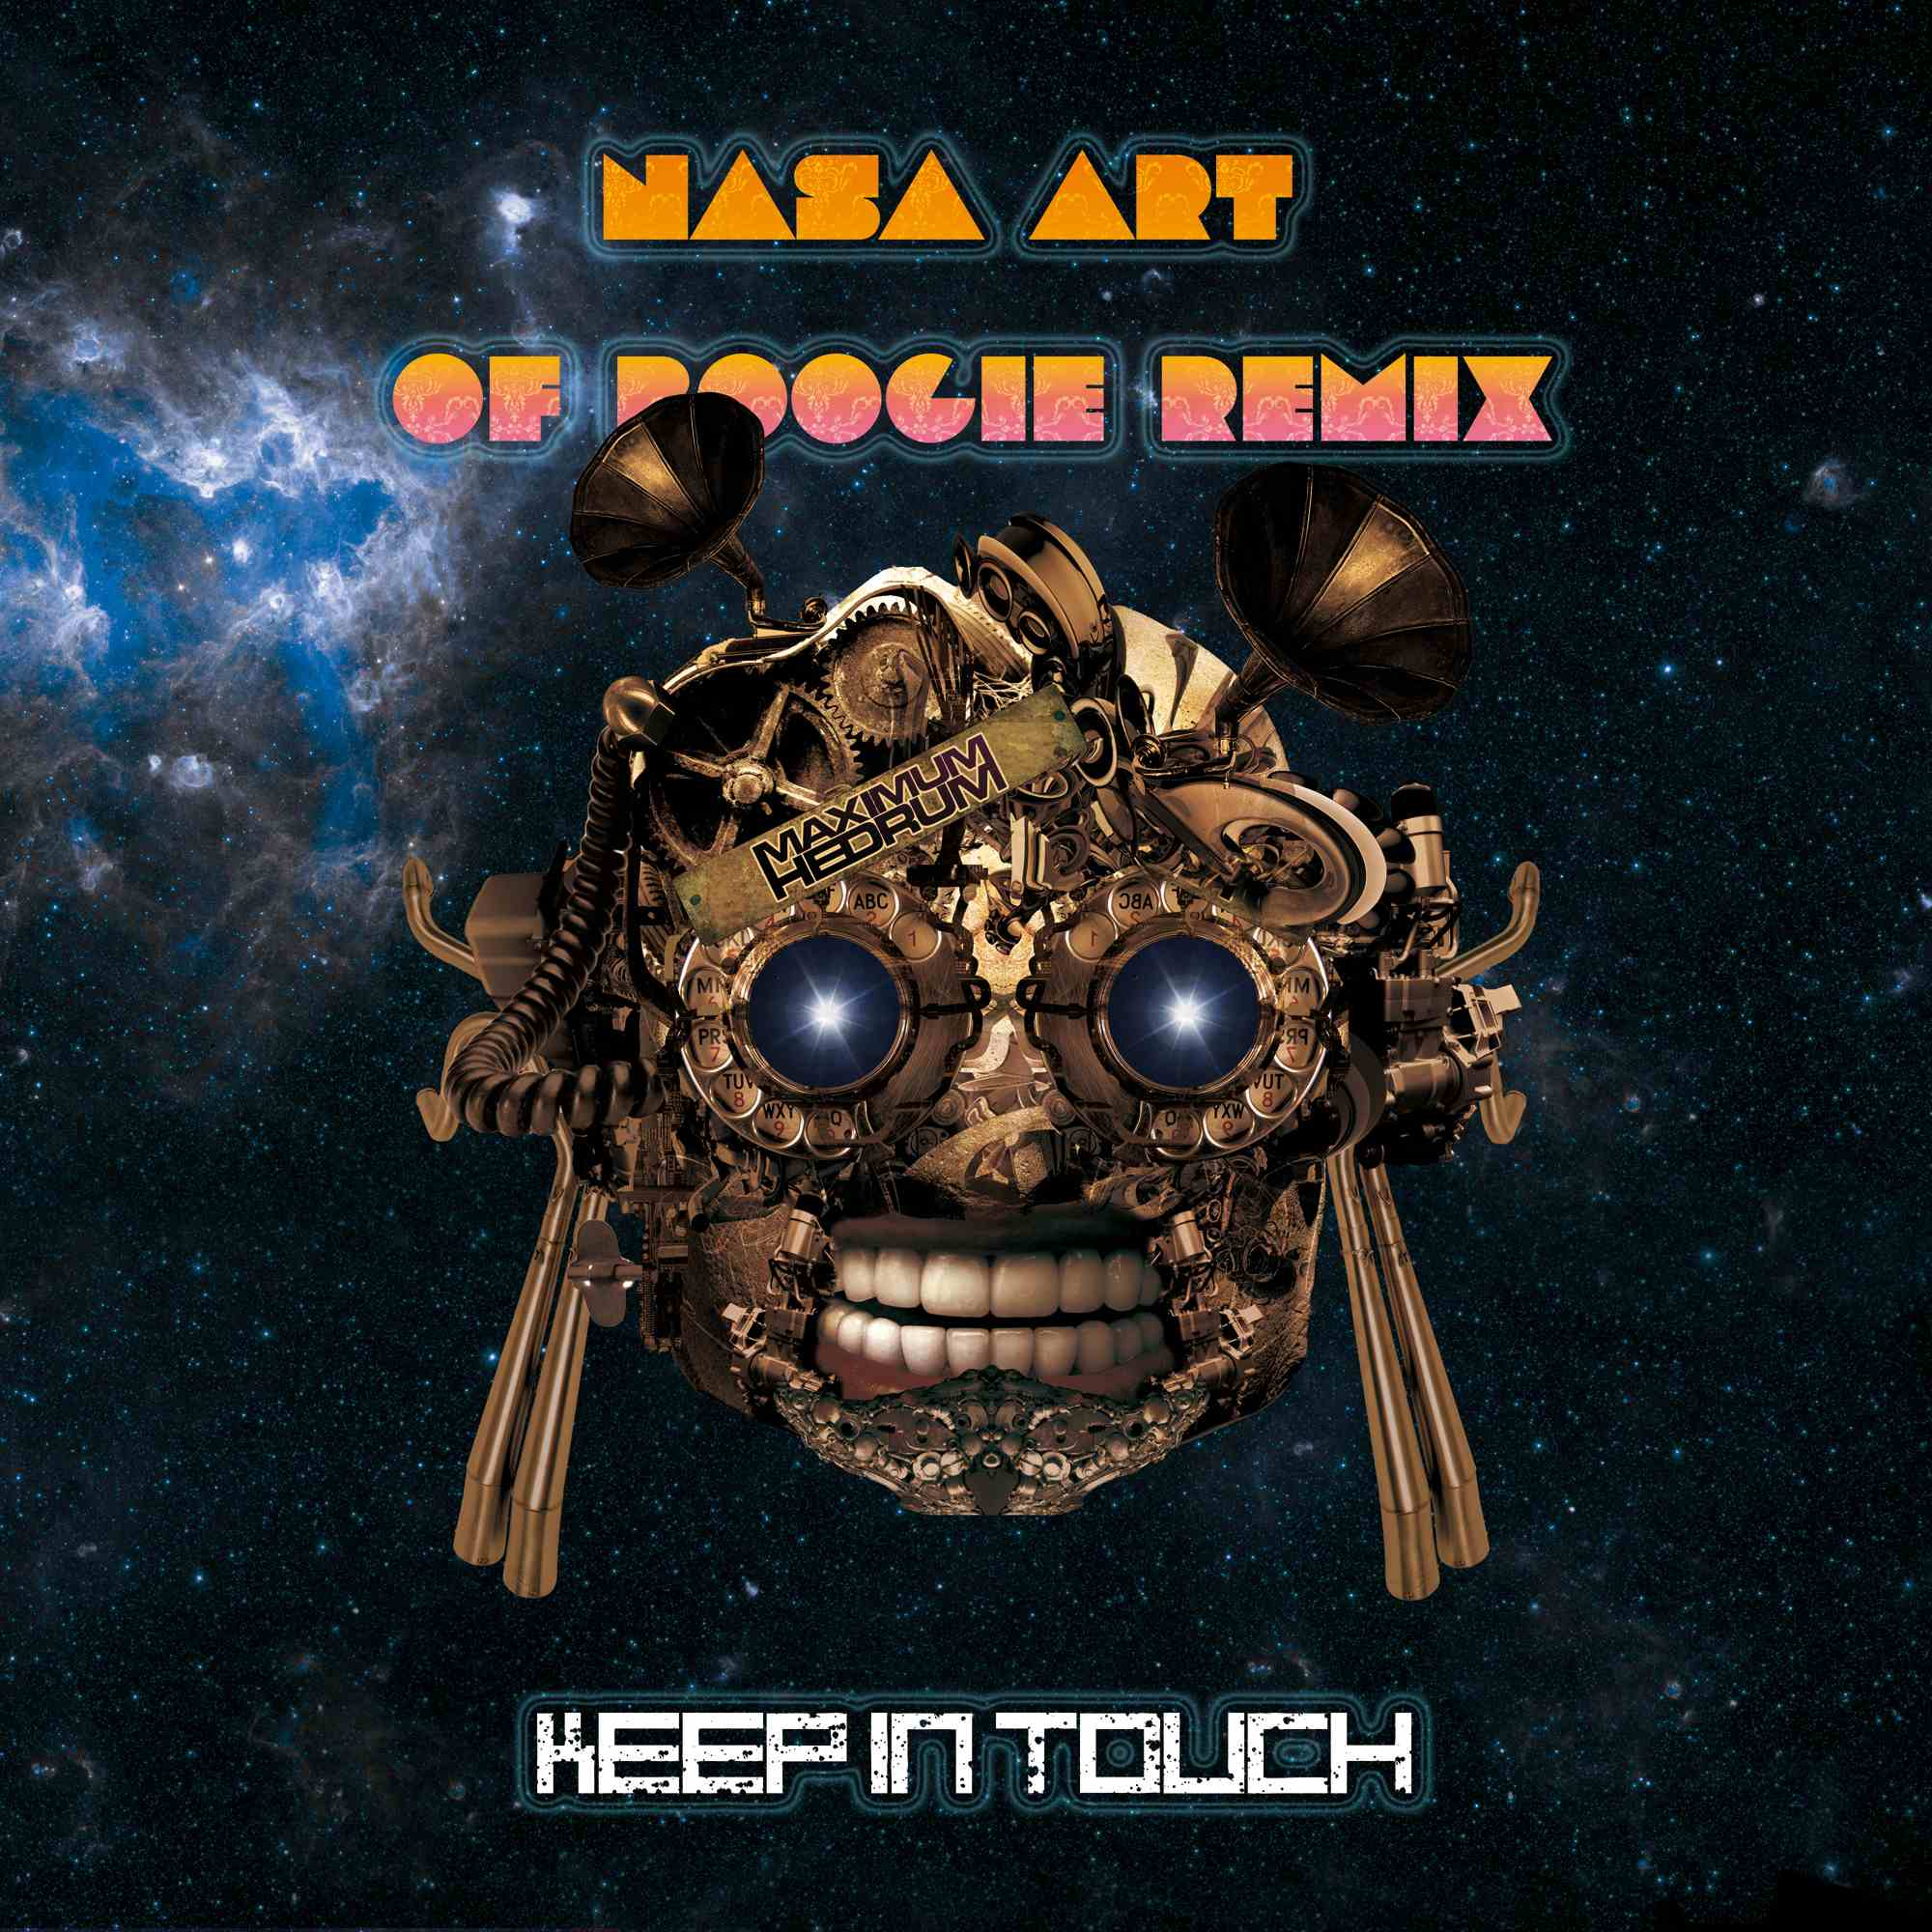 Maximum Hedrum - Keep In Touch Feat. George Clinton (N.A.S.A. Art of Boogie Remix)